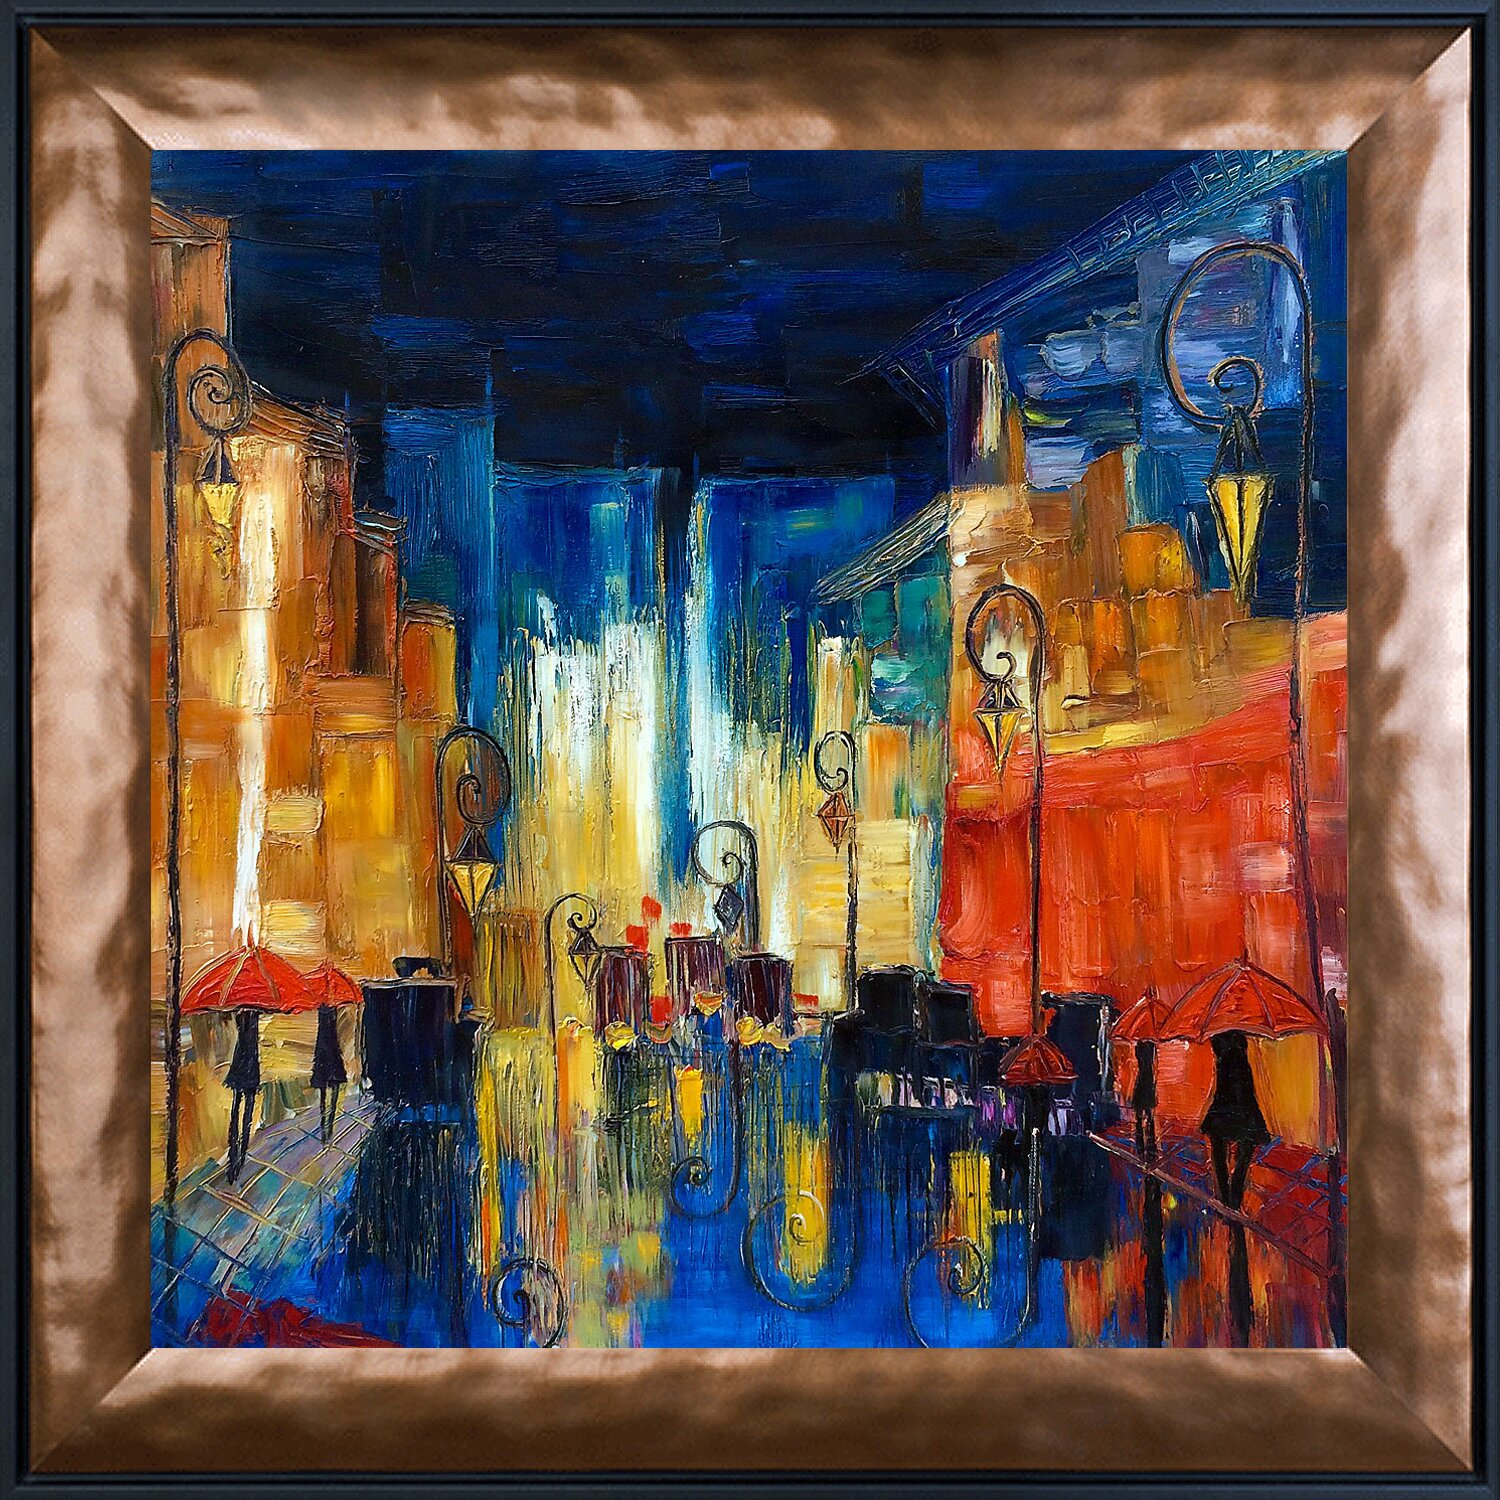 Tori home street by justyna kopania framed painting print for Framed reproduction oil paintings